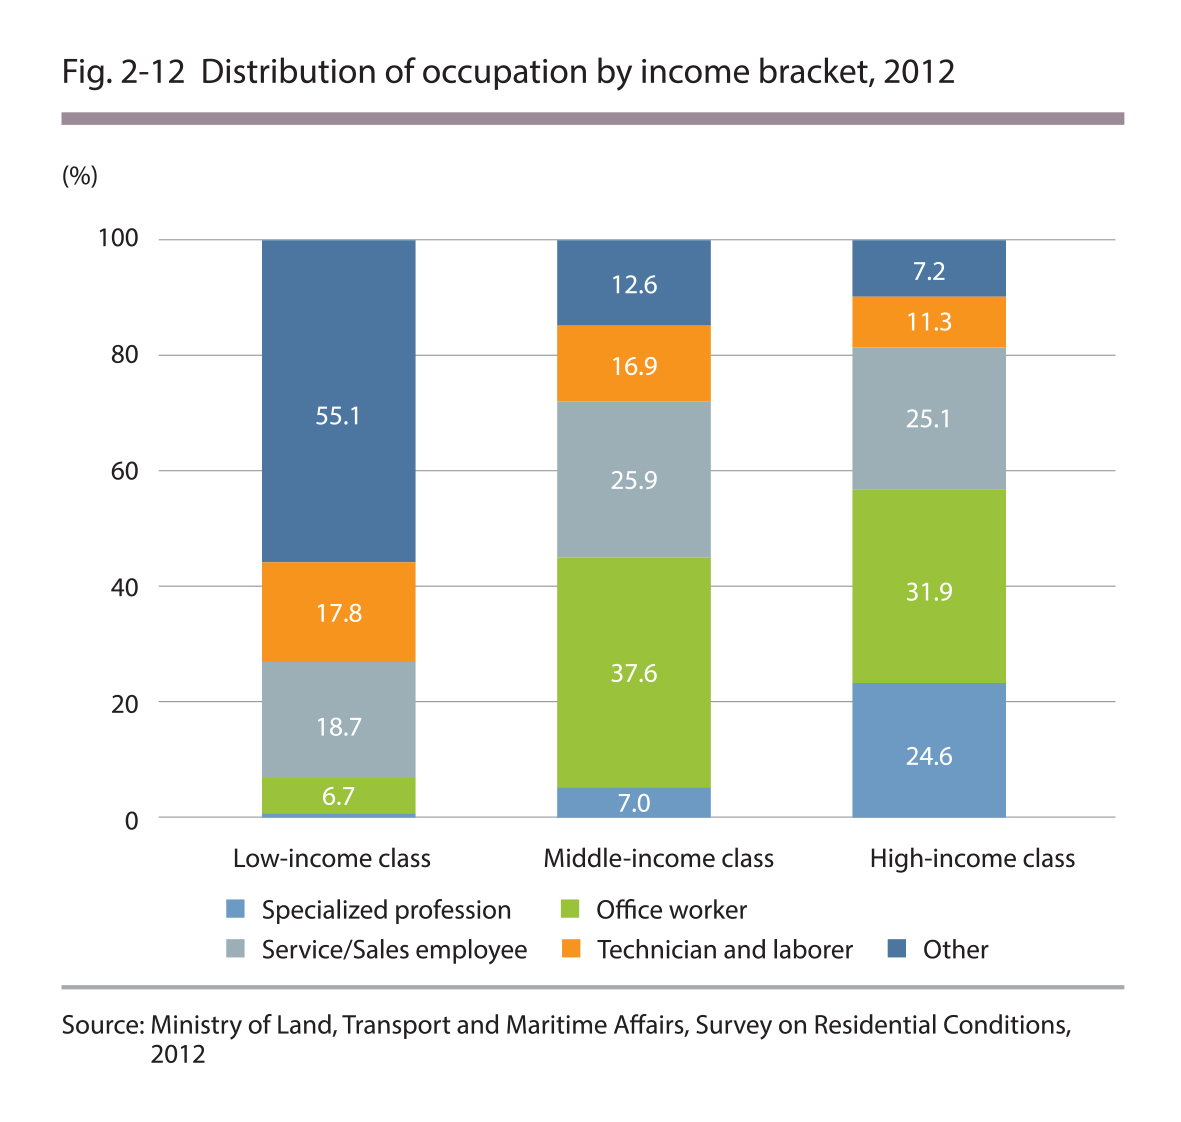 Distribution of occupation by income bracket, 2012